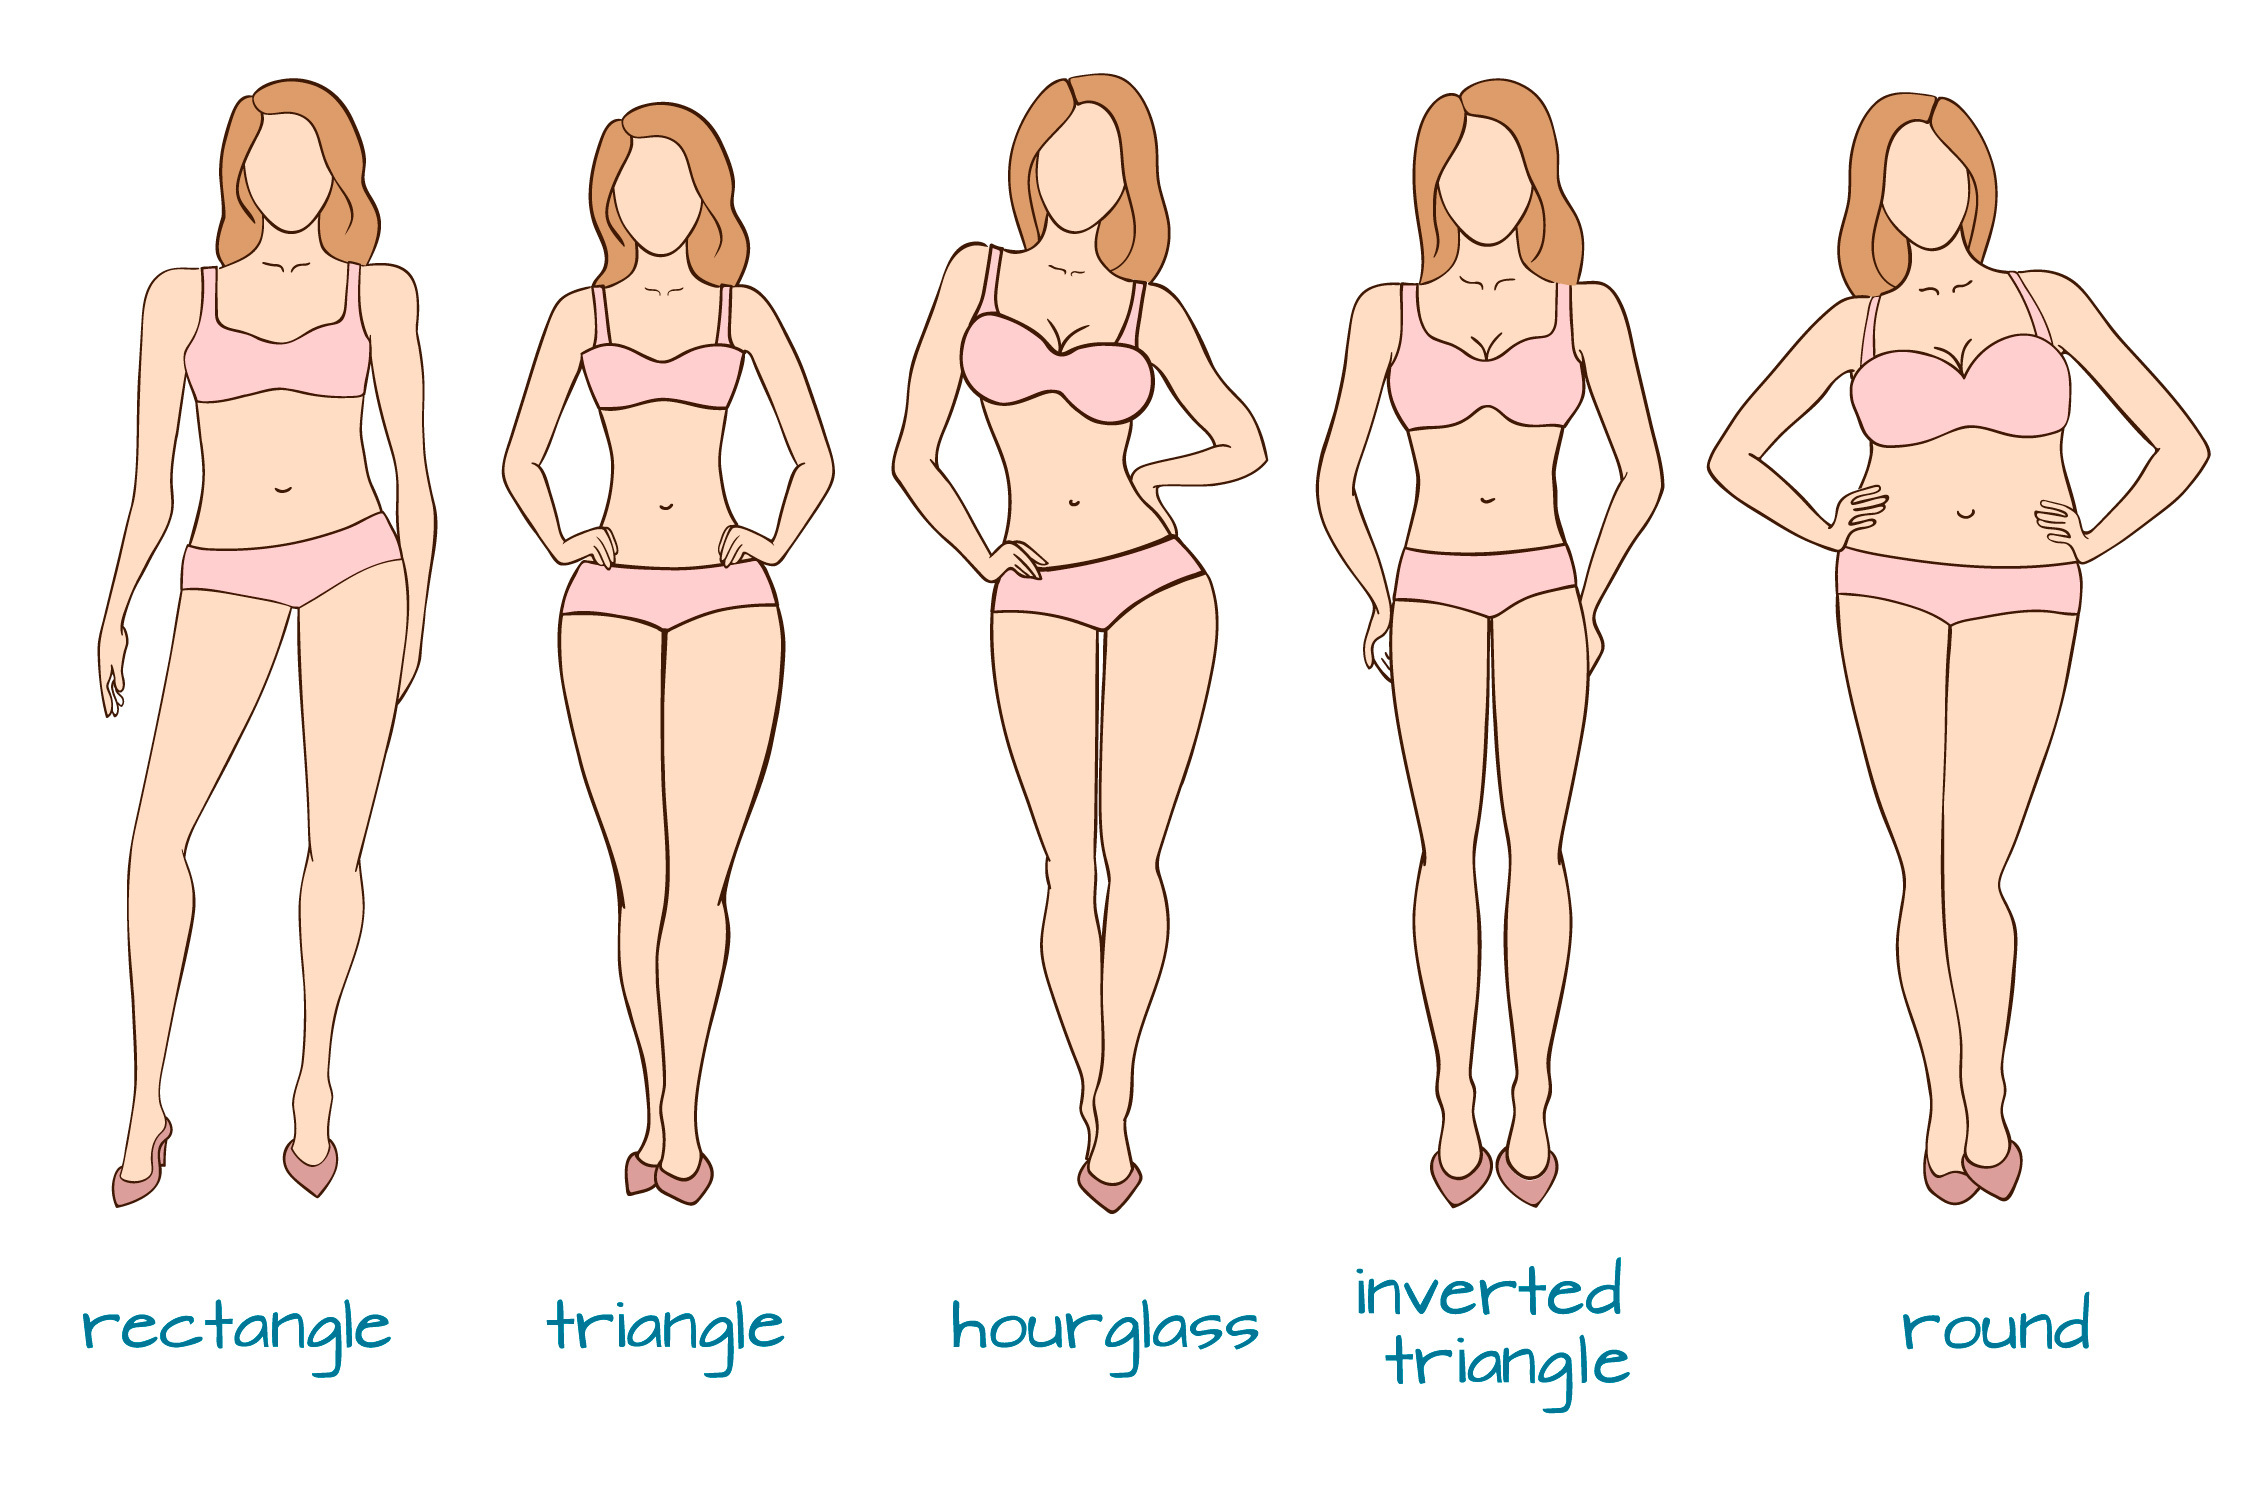 2b2ed398f92 How to Find the Sexiest Swimsuit for Your Body Shape This Season